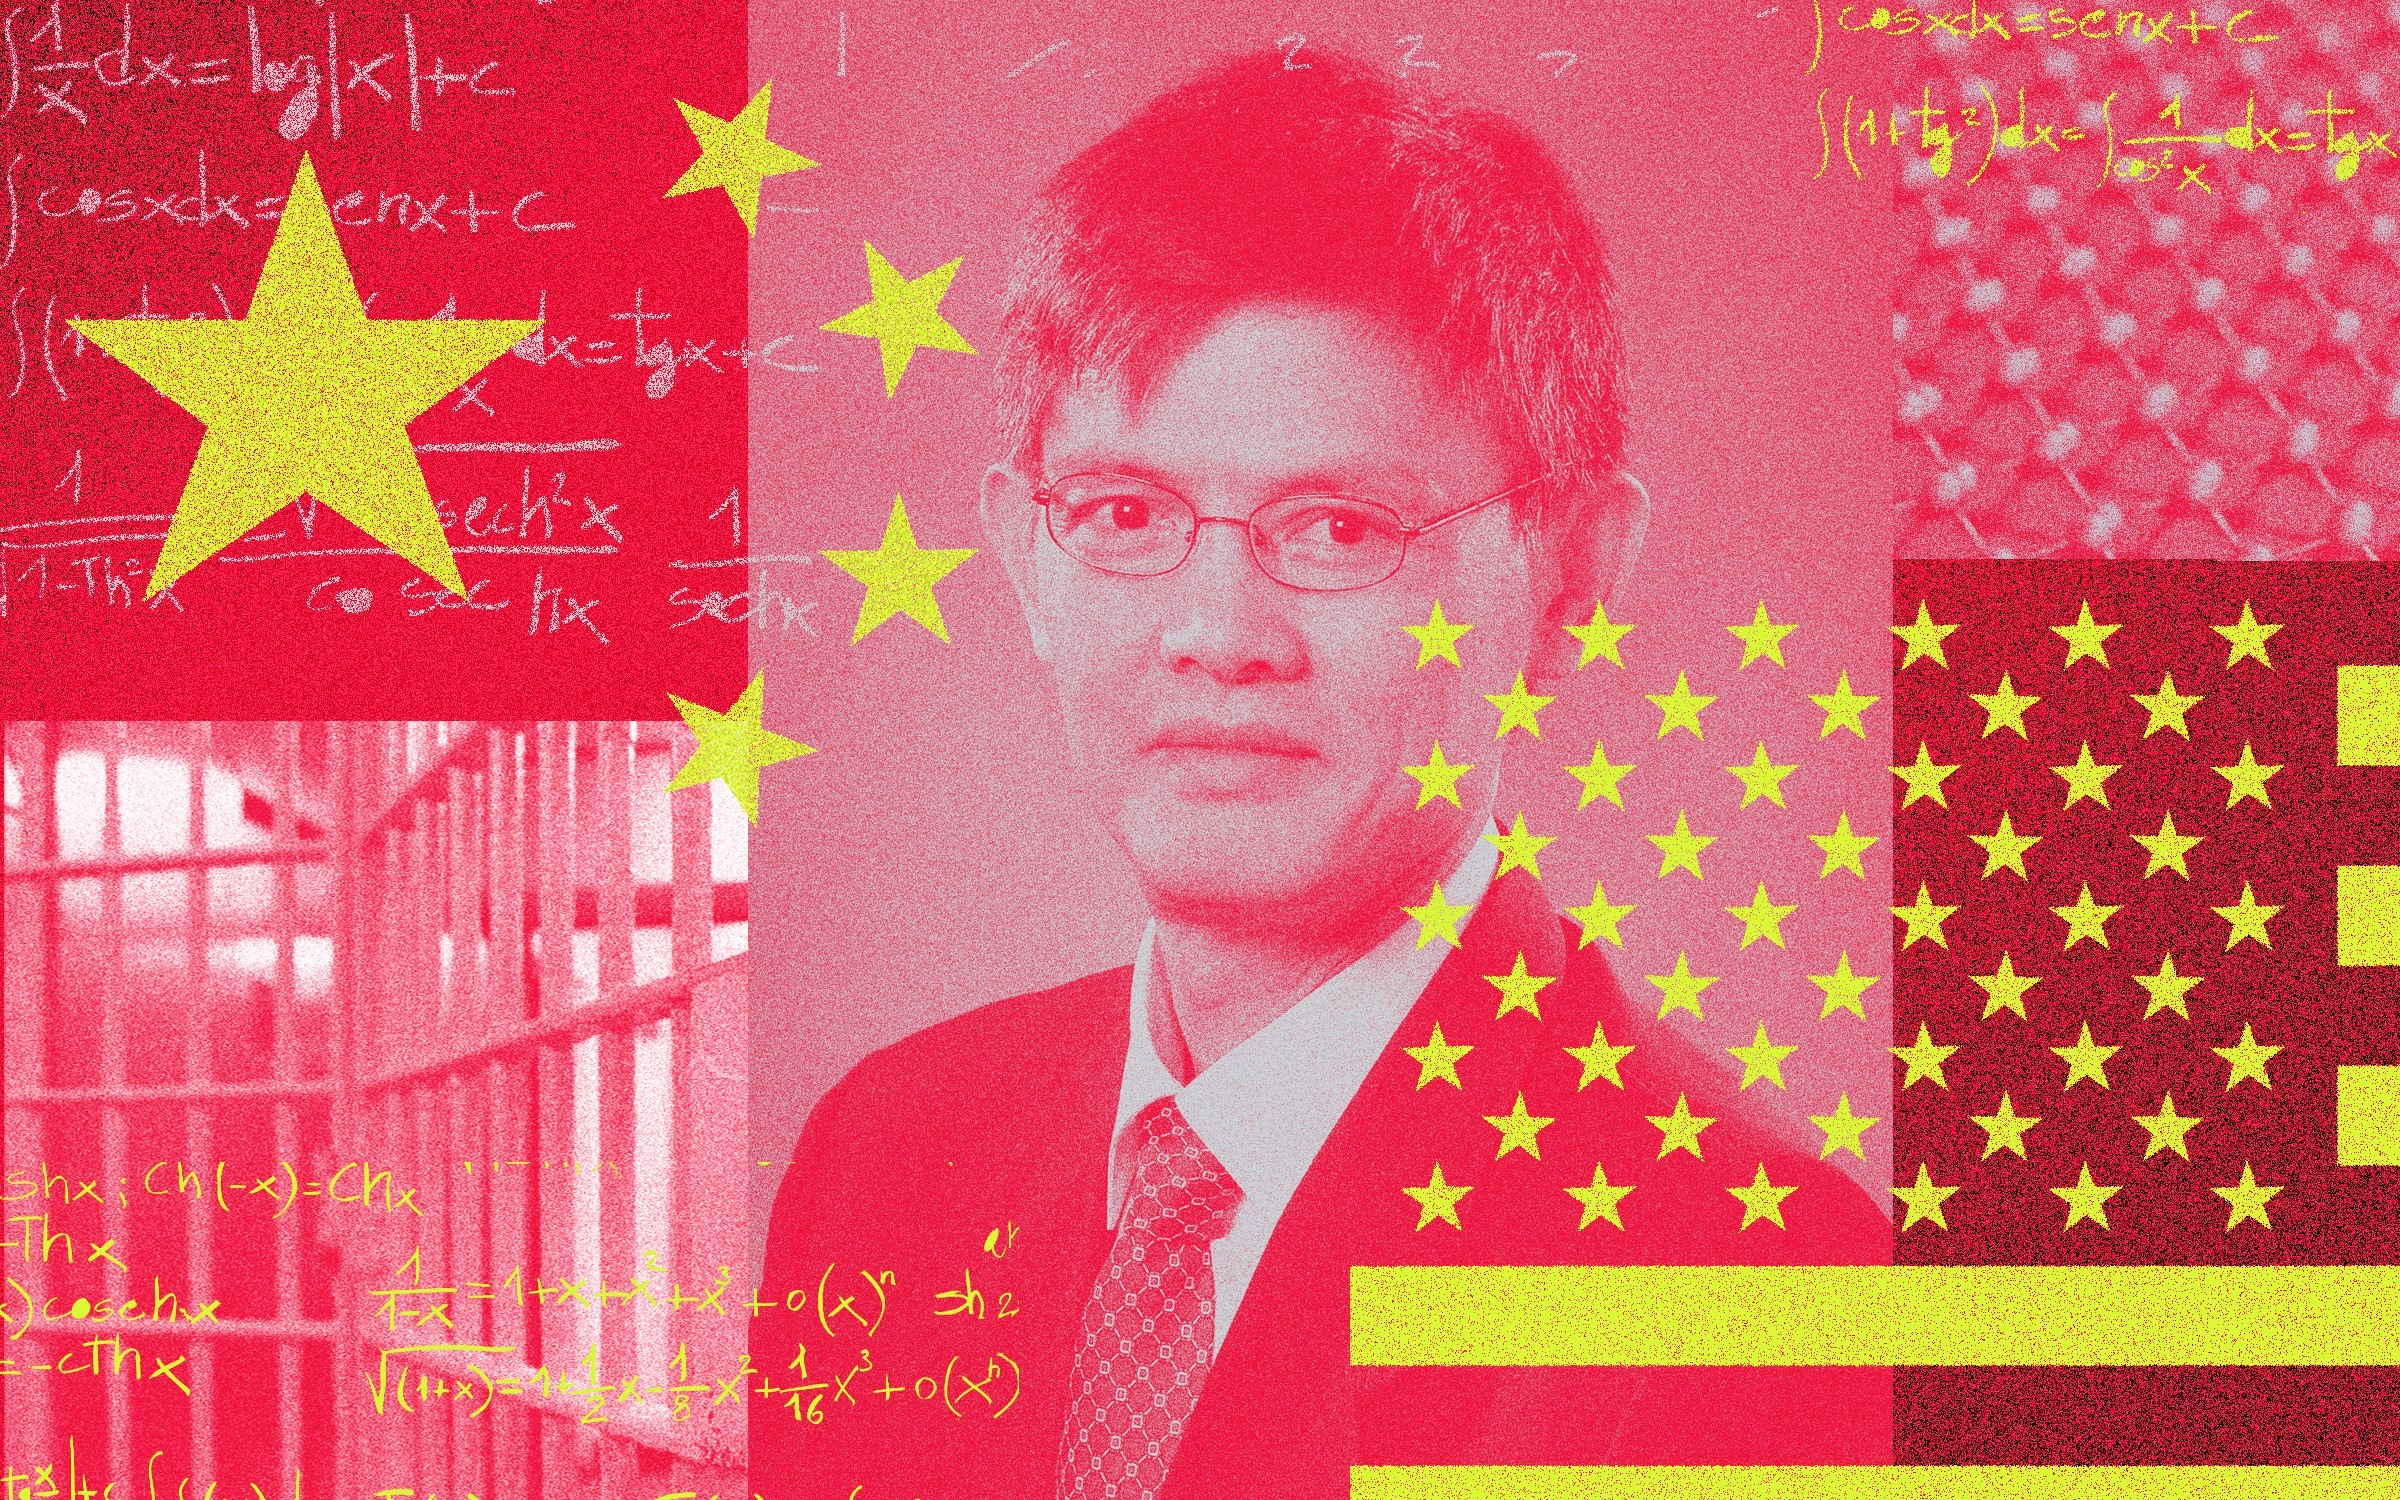 Chinese American physicist Xiaoxing Xi with symbols of the U.S. and Chinese flags, formulas, and prison bars over his photo.